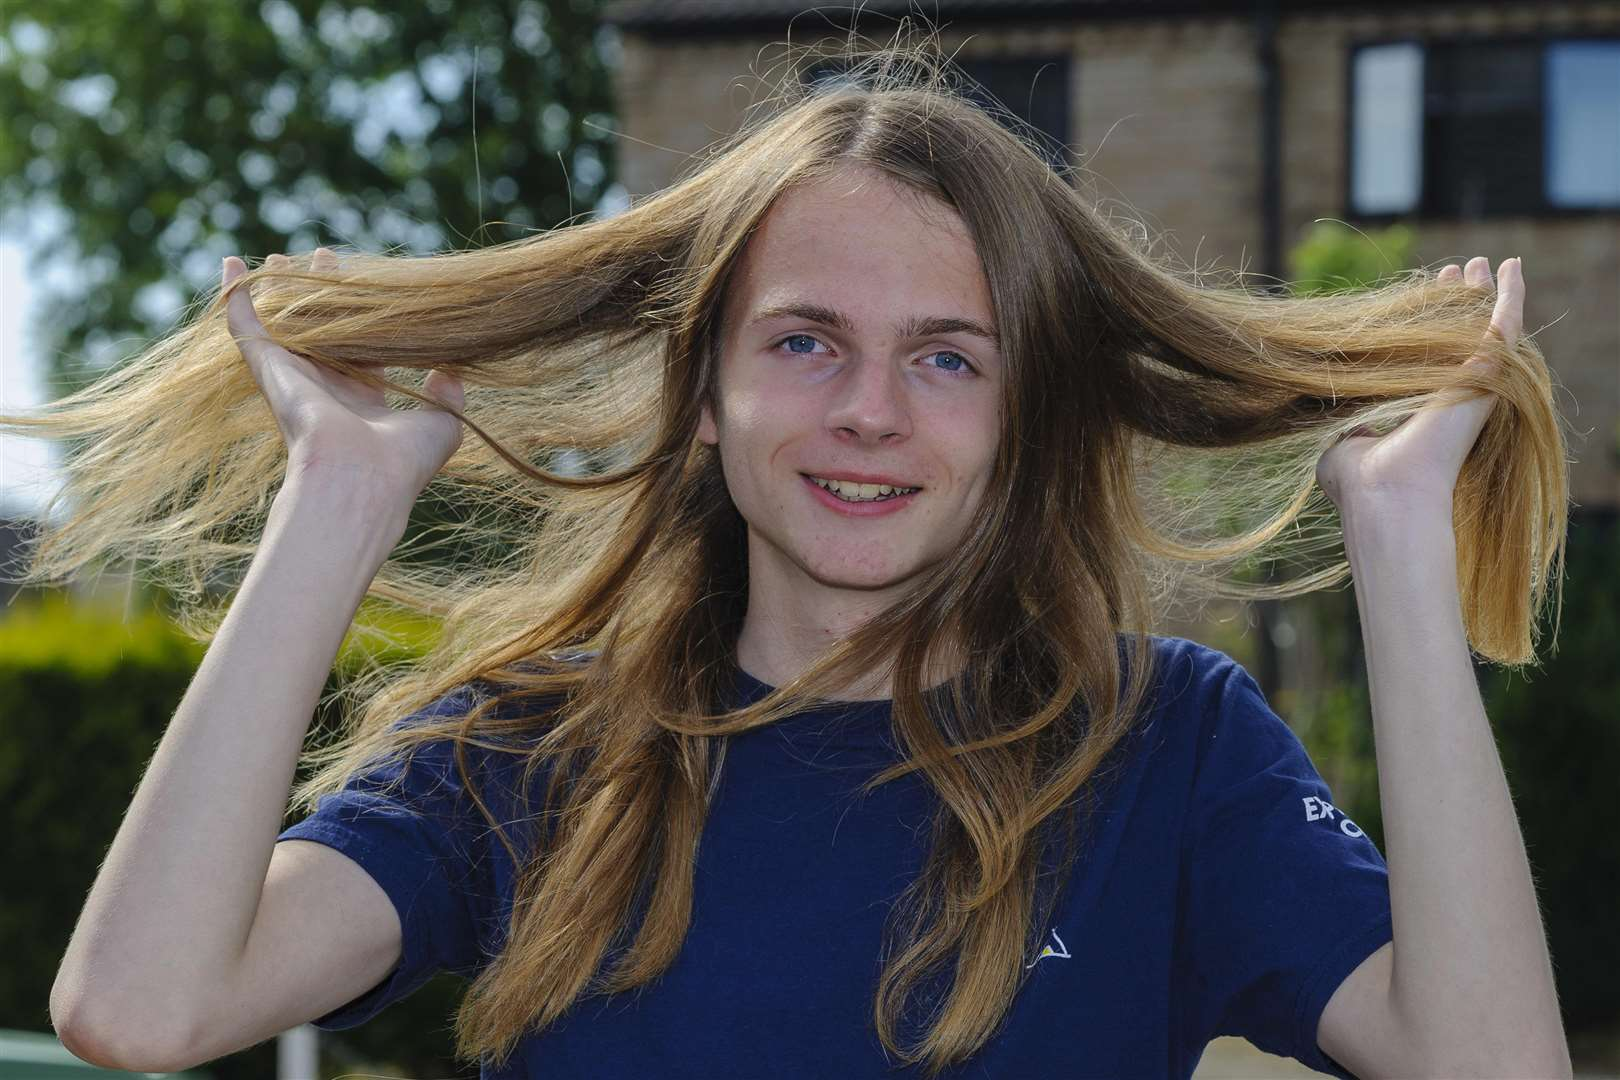 Evan Voyce, who's having his hair cut to raise money for a trip to Kenya. Picture by Mark Bullimore